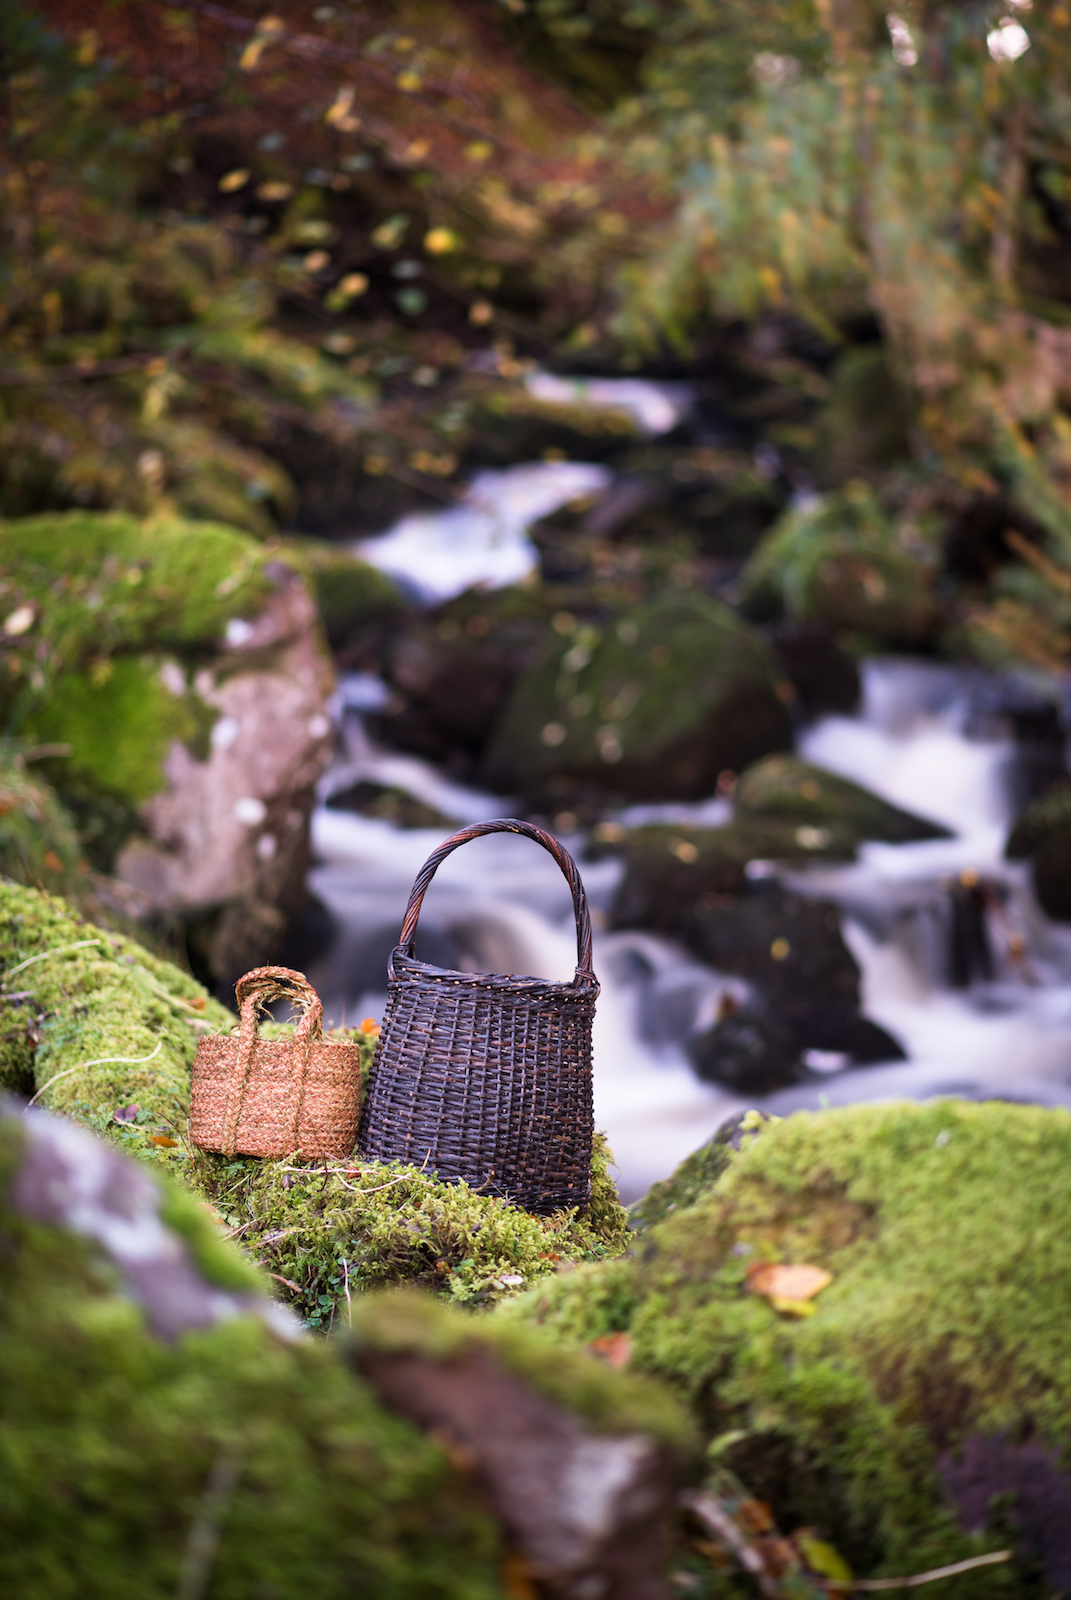 Highland Hairmoss Basket and Widow's Basket